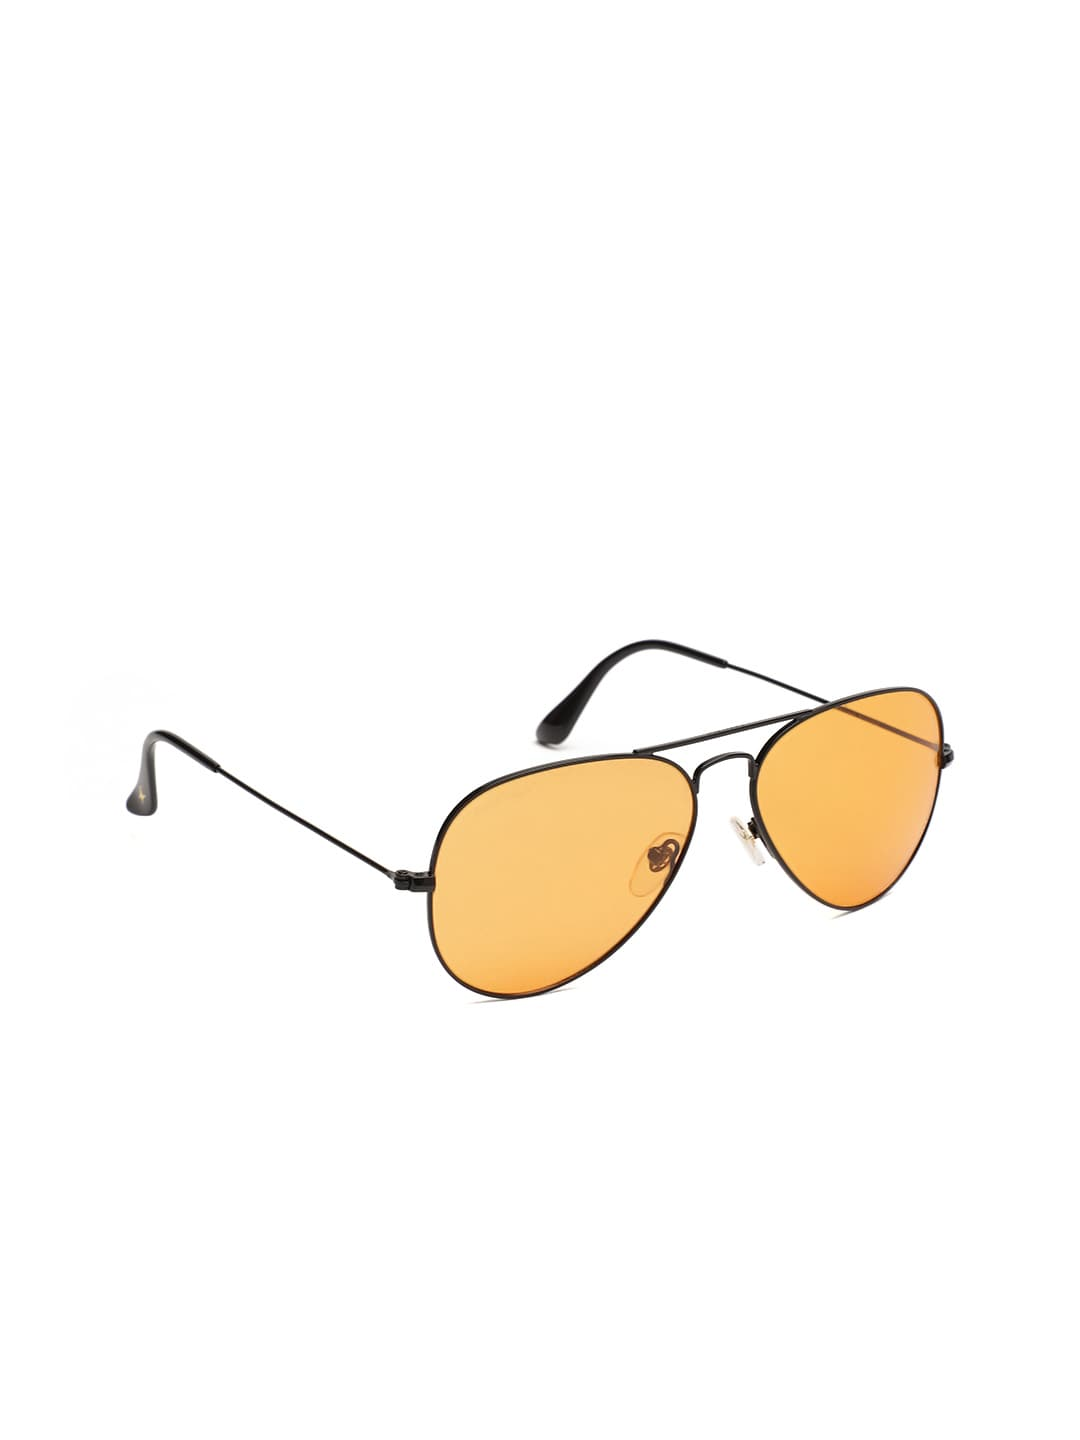 3f8d1341e1b Saree Sunglasses - Buy Saree Sunglasses online in India